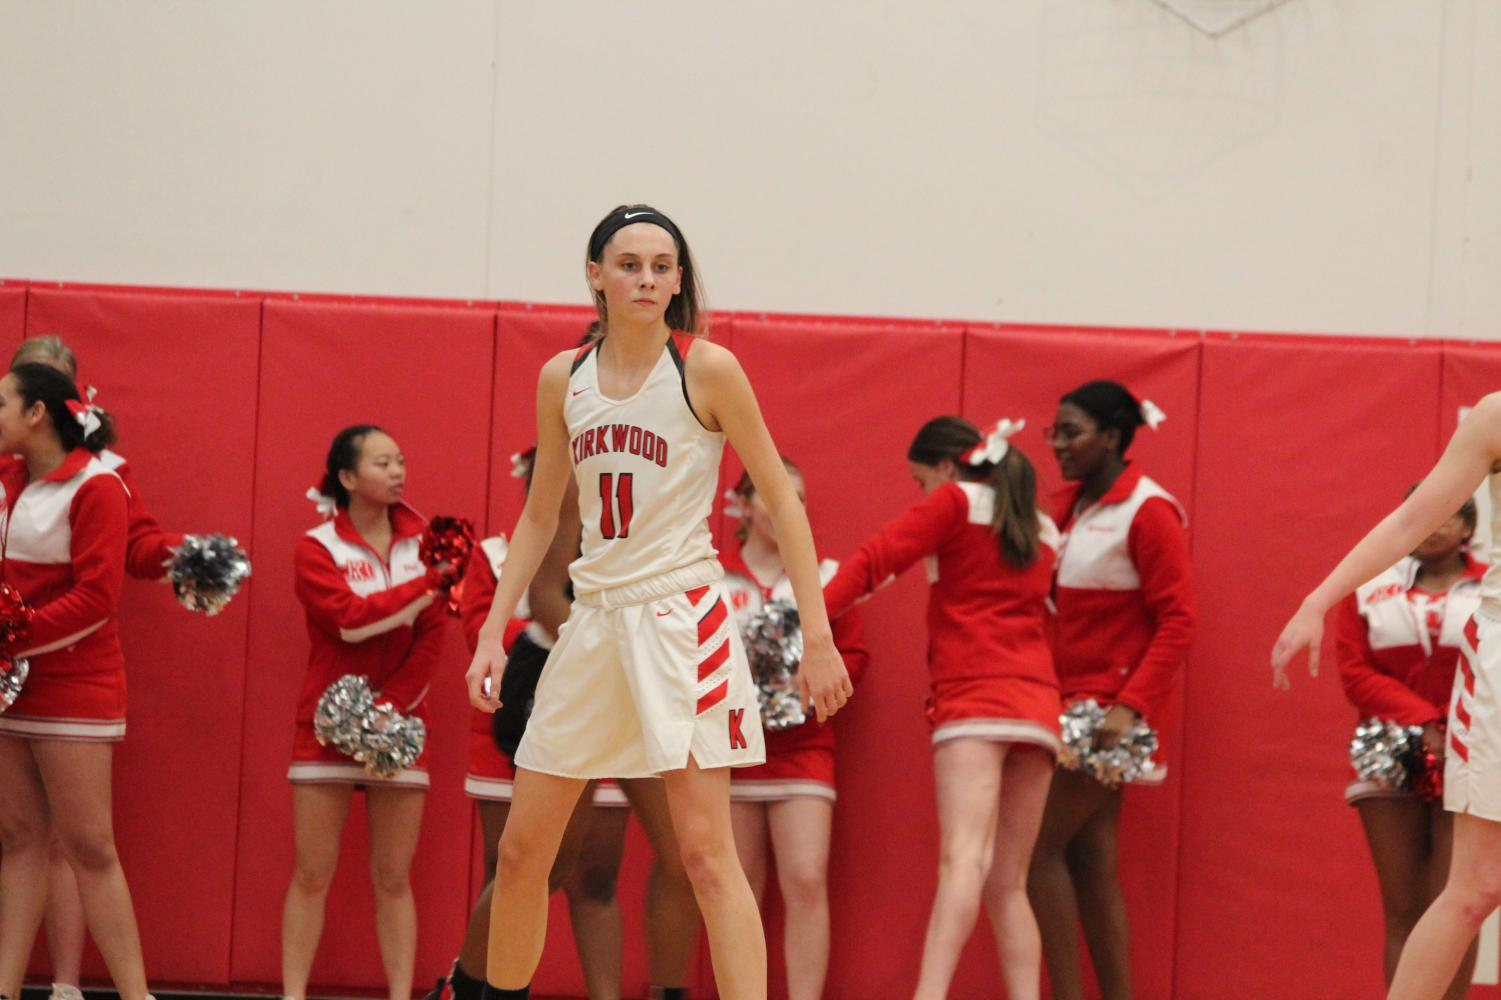 During+a+varsity+girls%E2%80%99+basketball+game%2C+Rylee+Mulvaney%2C+junior%2C+waits+for+the+play+to+develop+while+on+defence+Feb.+8.